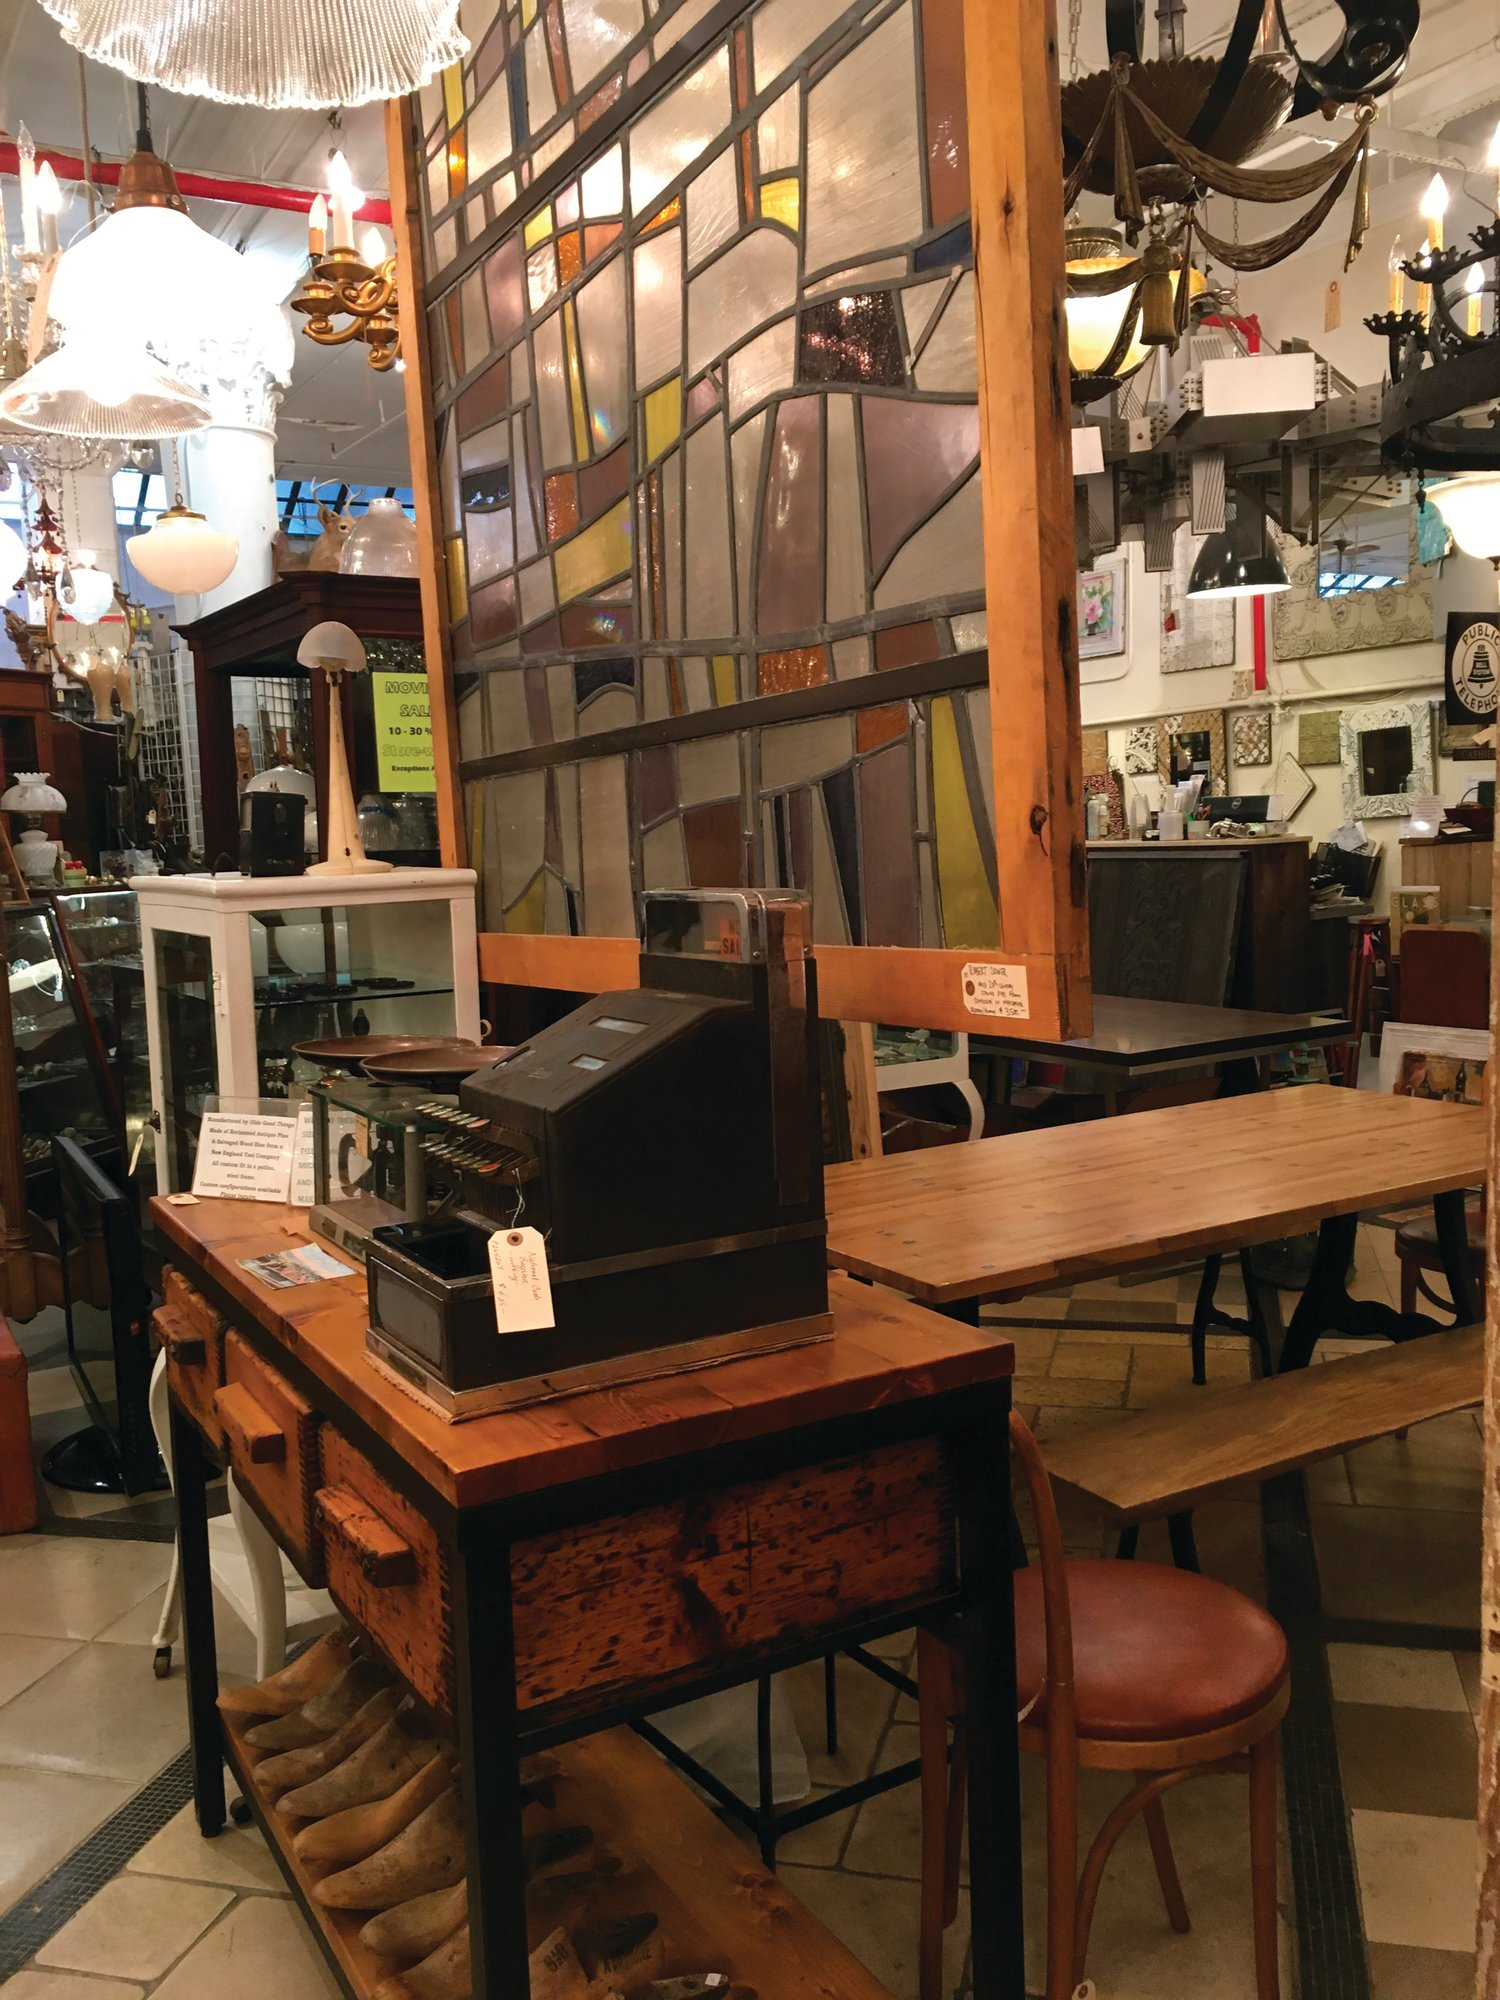 Seen are various salvaged items for sale at Olde Good Things salvage store in New York. Two of the hottest trends in home decor are sustainability and authenticity.